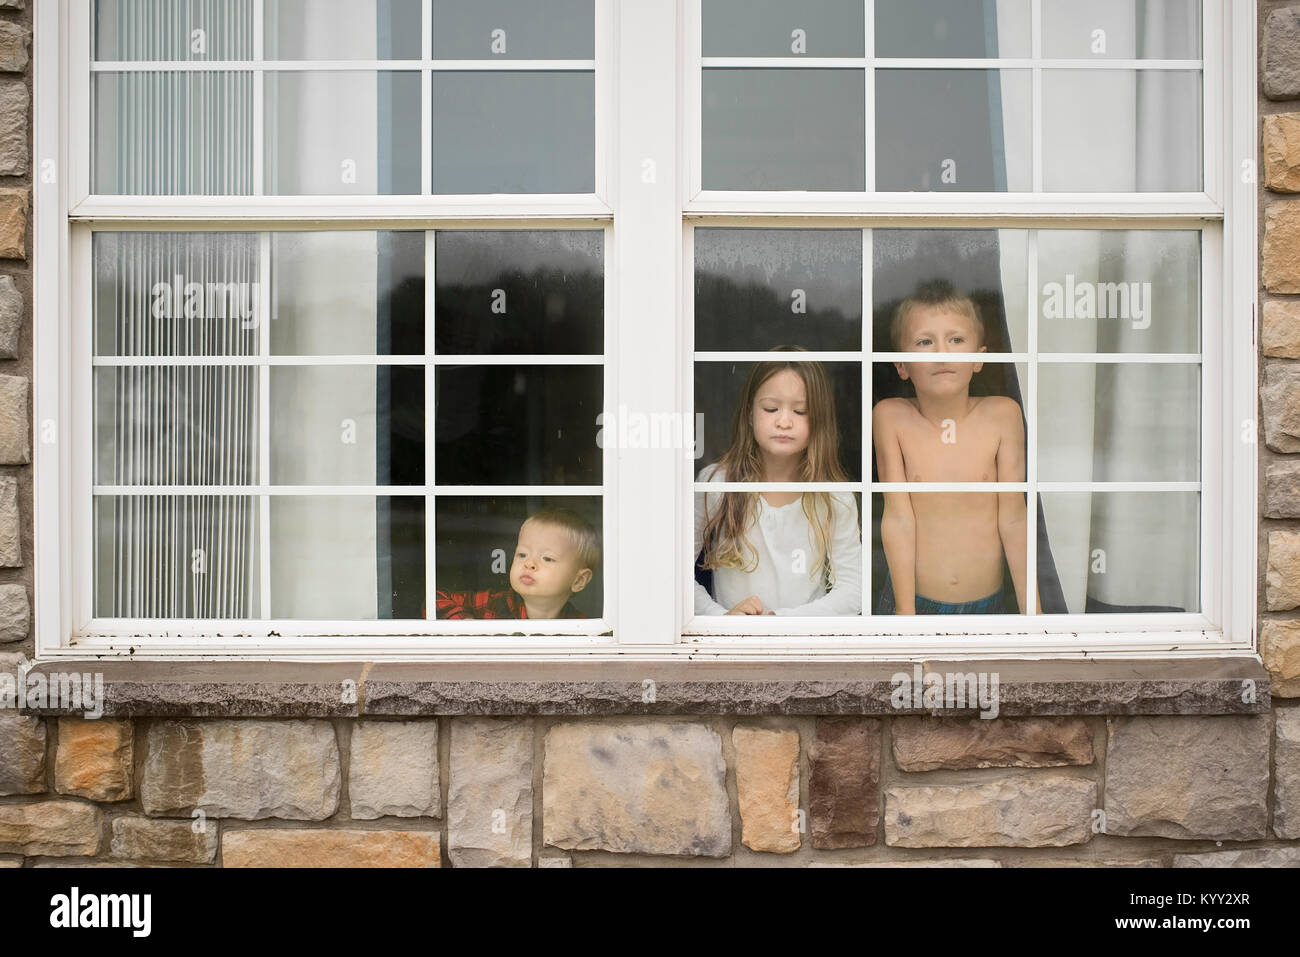 Siblings looking through window at home - Stock Image